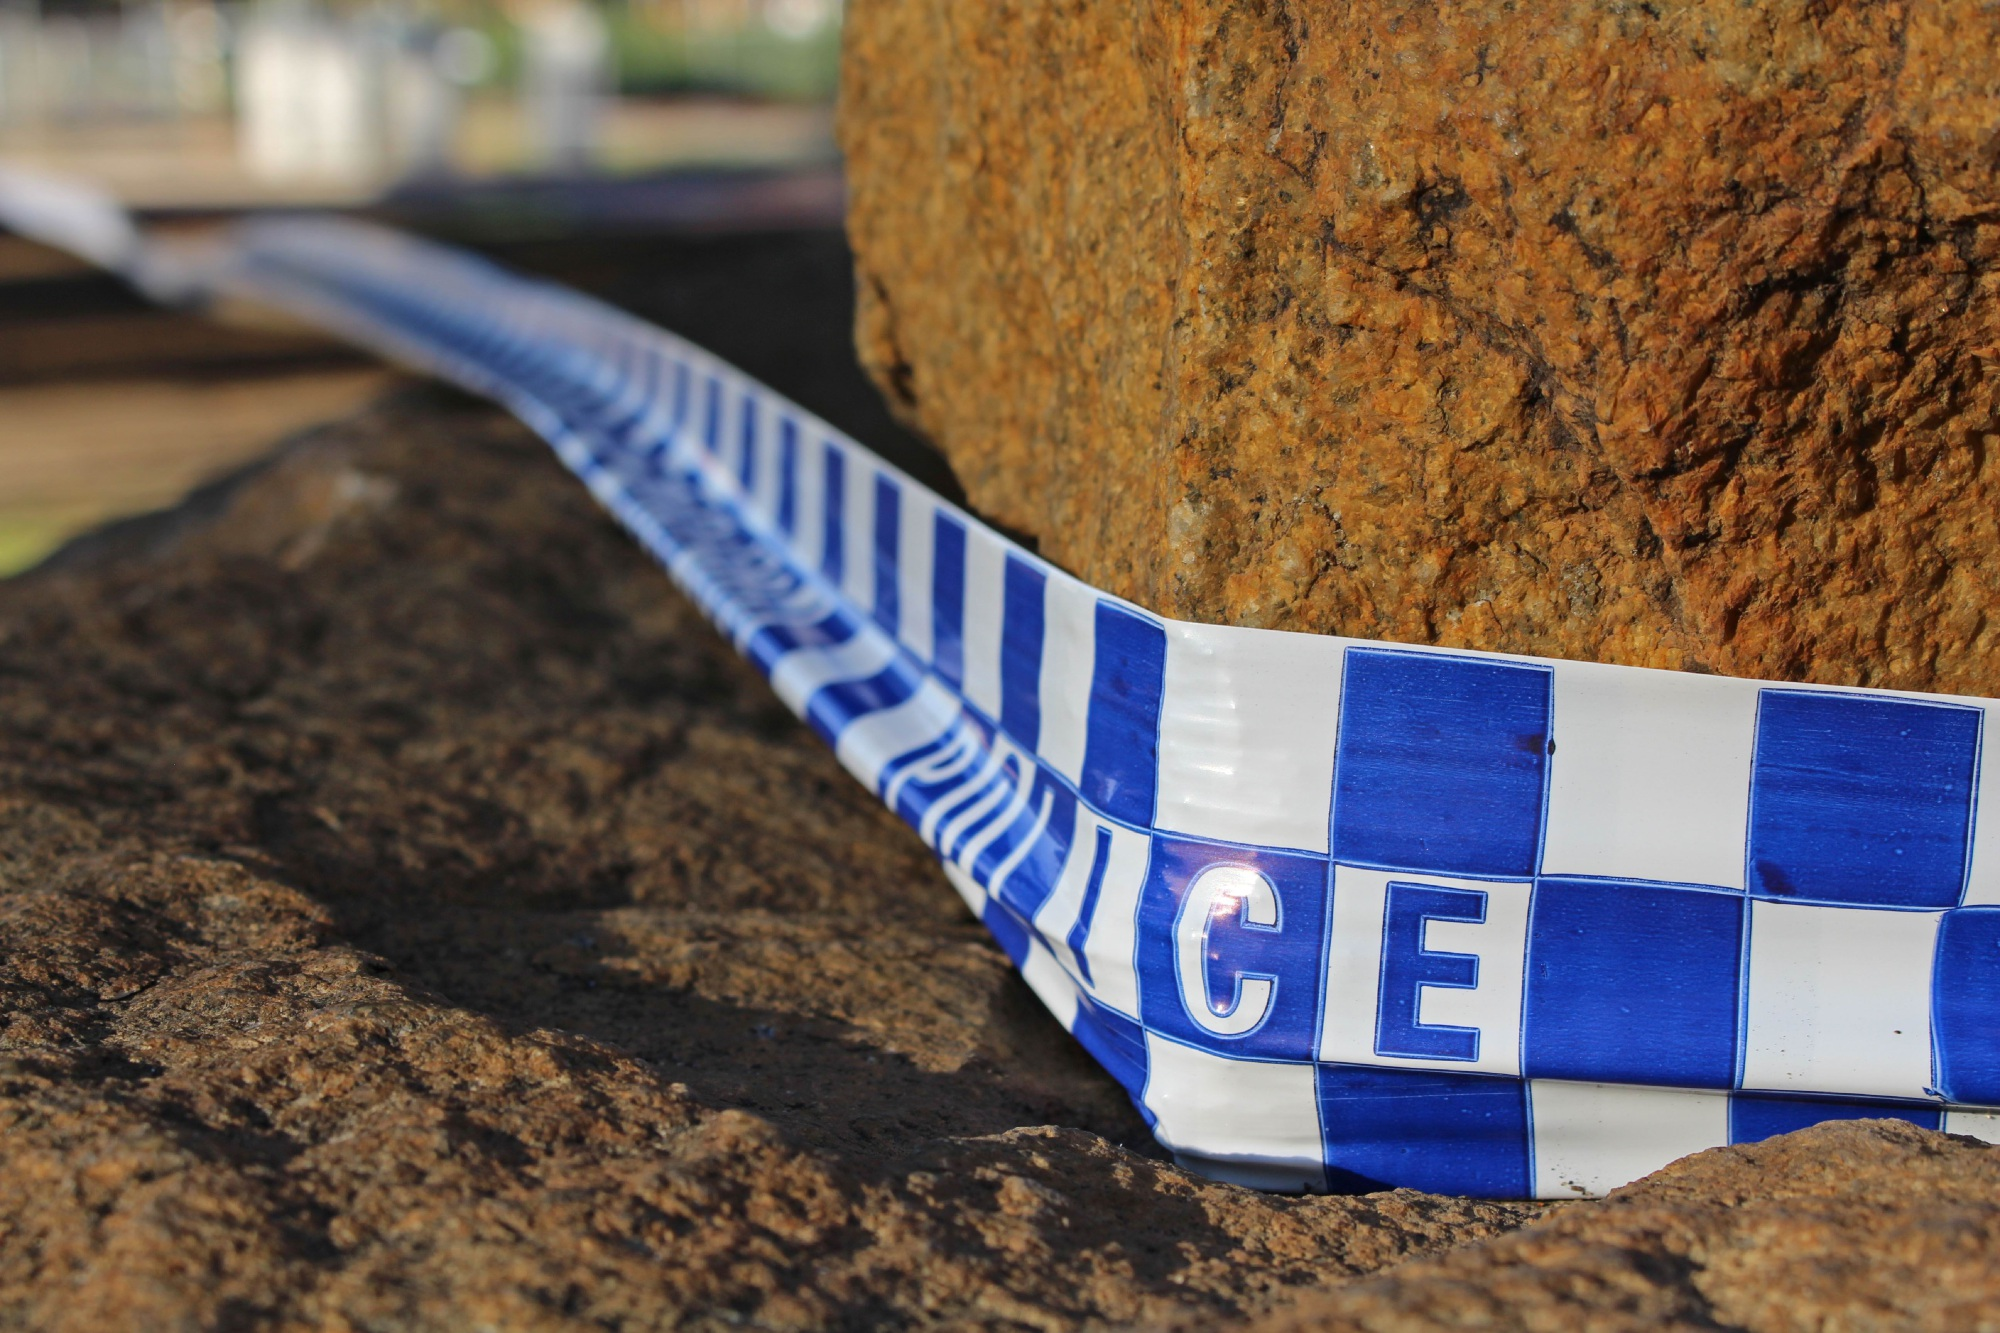 Kwinana: man charged with armed robbery of pizza store